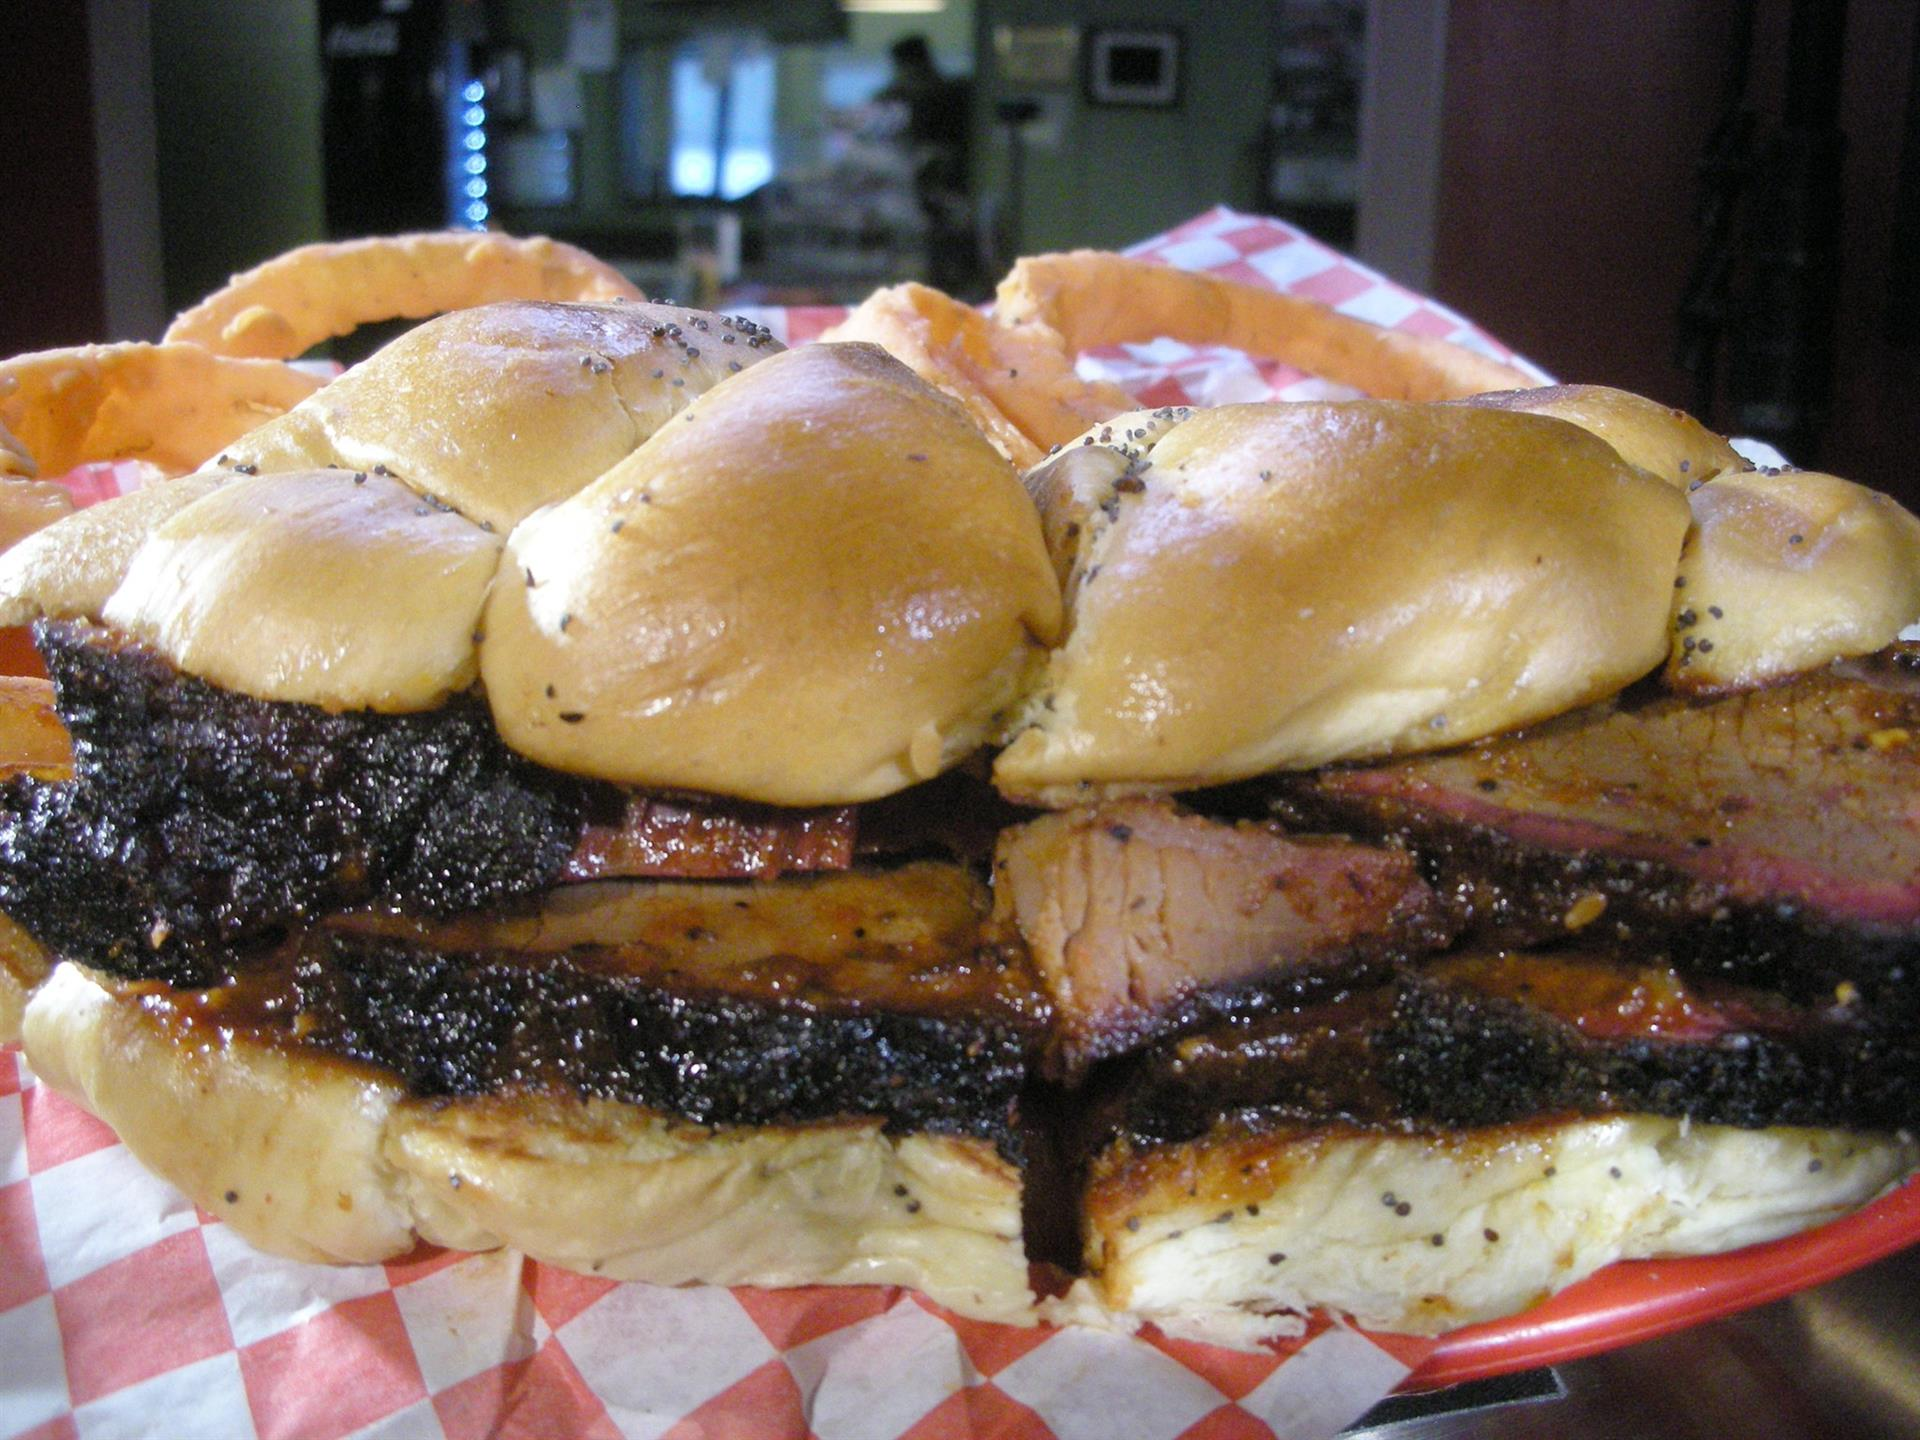 BBQ Brisket sandwich on a bun